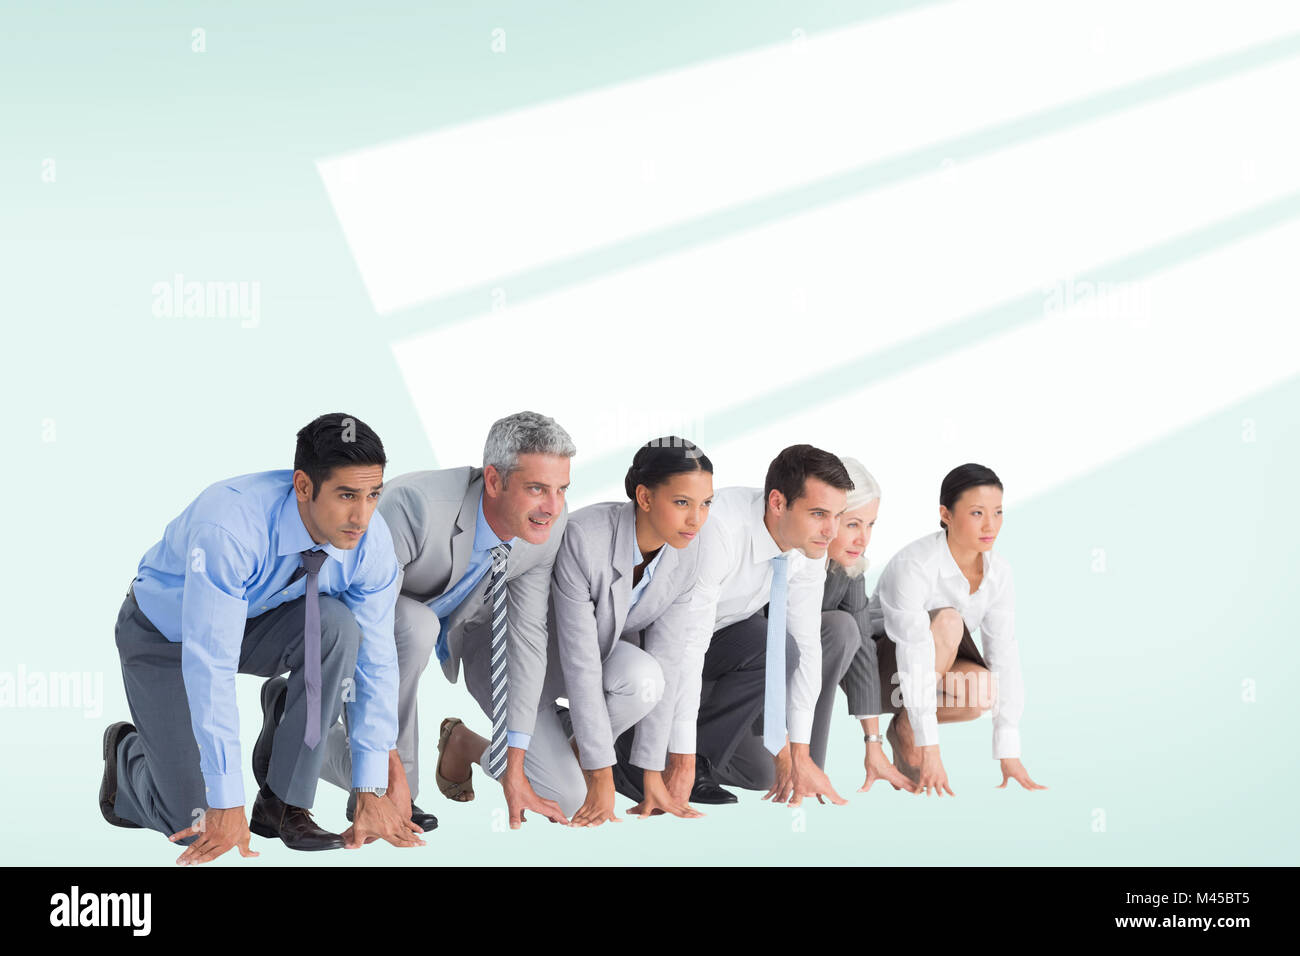 Composite image of business people preparing to run Stock Photo